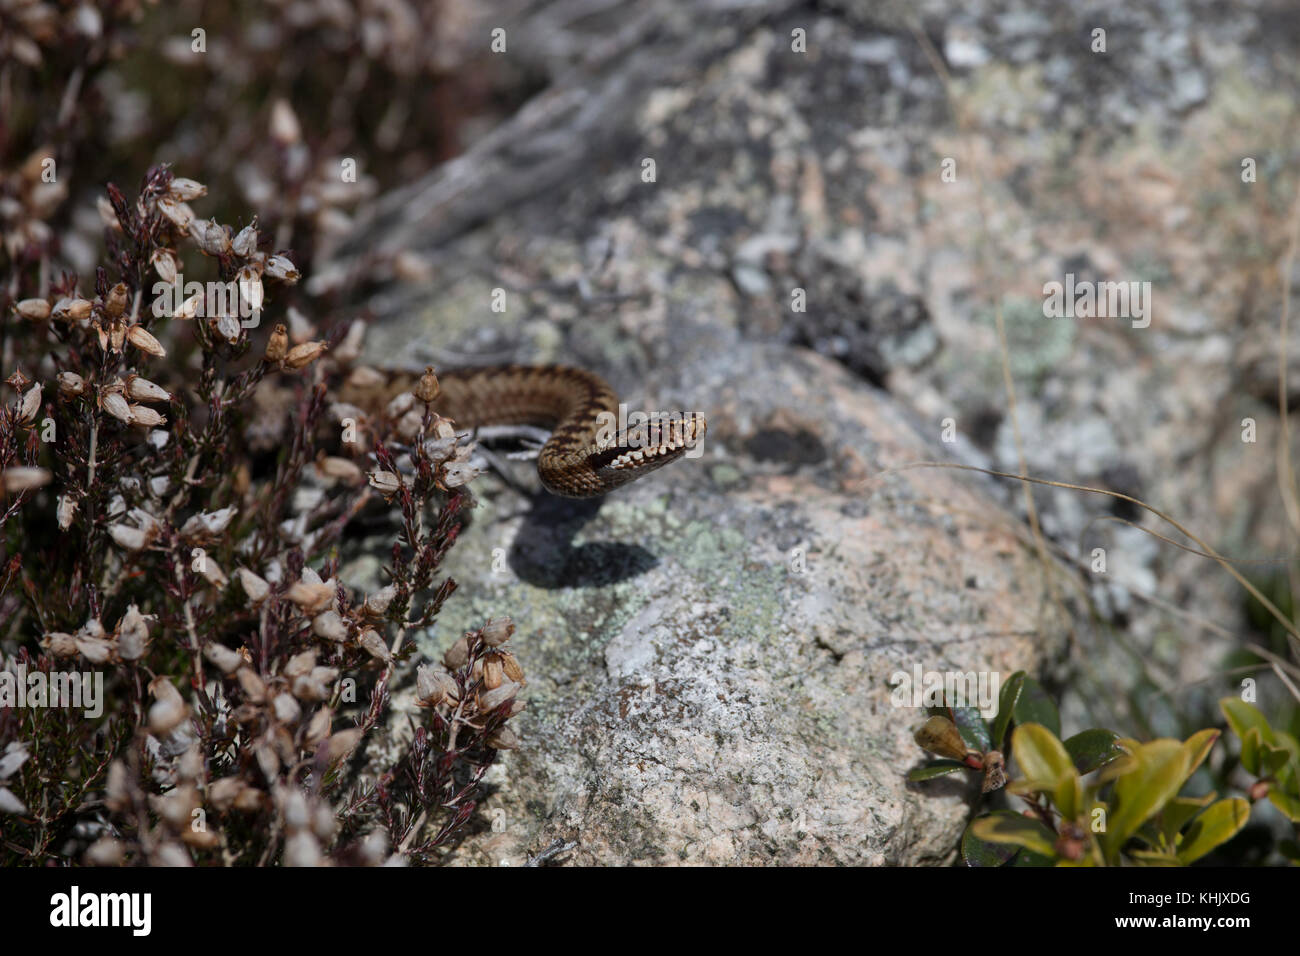 common adder viper, Vipera berus, resting on a rock near heather during a hot summer day in the cairngorms national - Stock Image